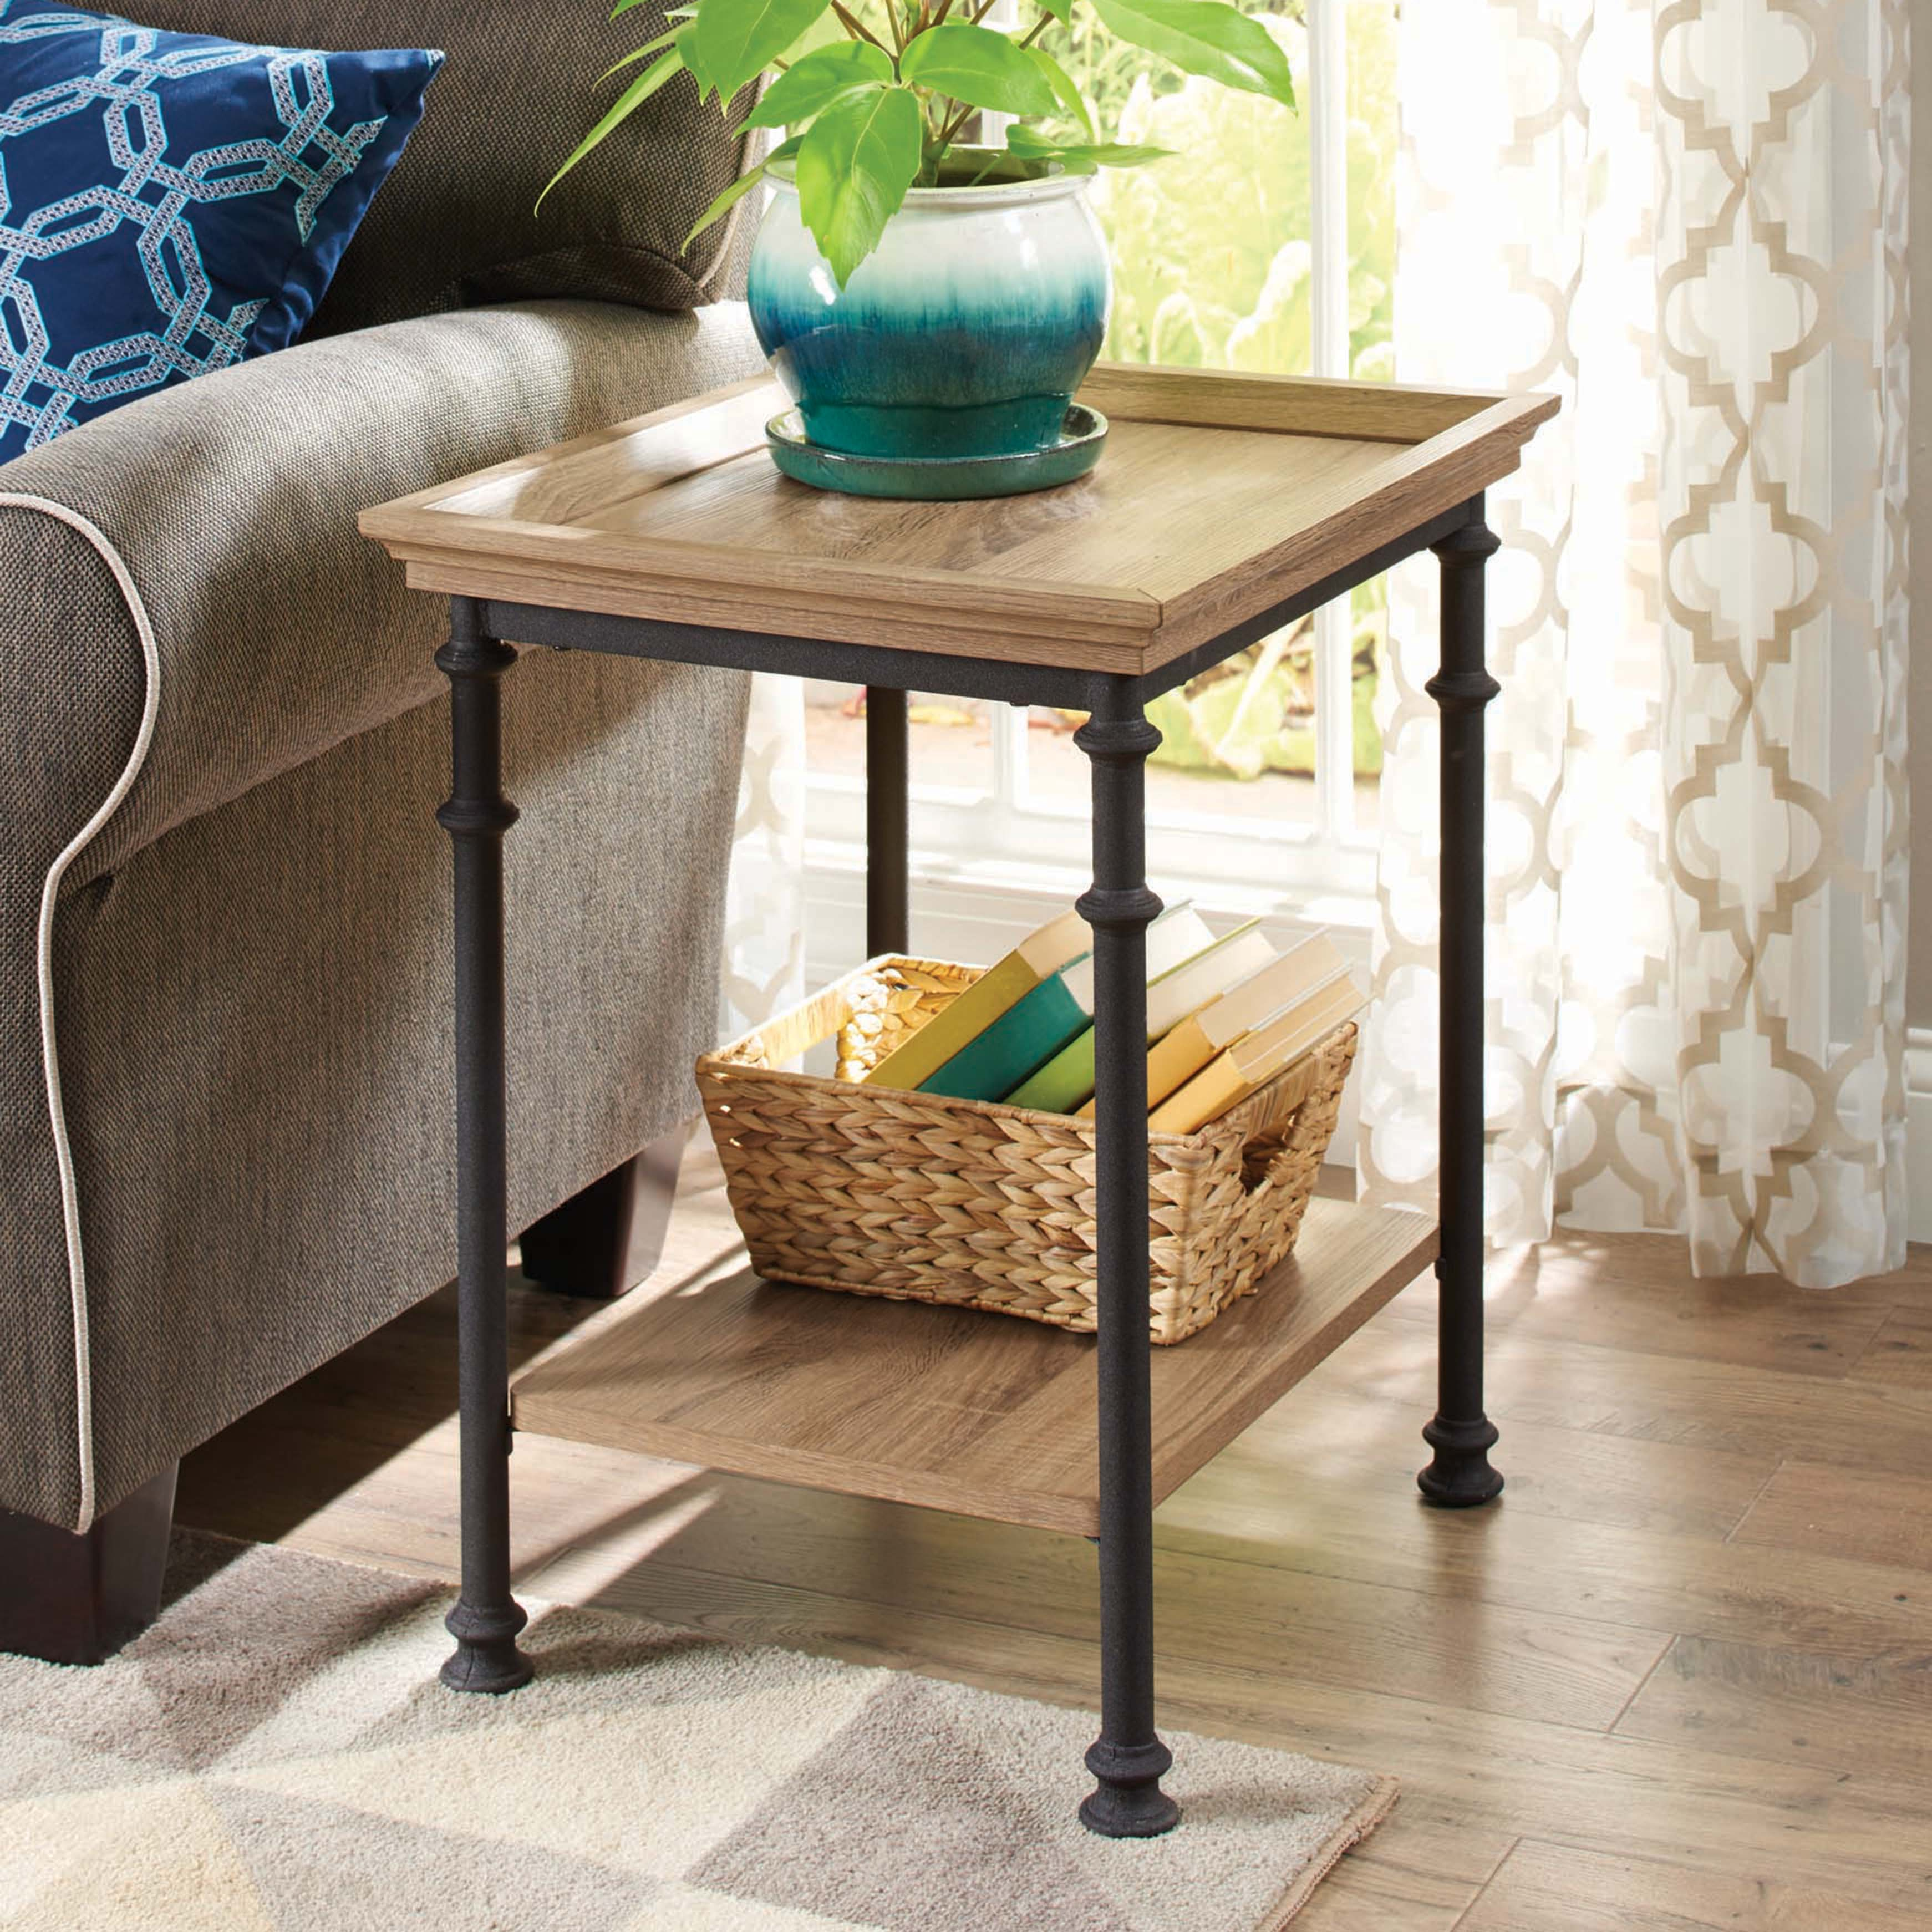 better homes gardens river crest side table rustic oak finish room essentials mixed material accent teak rocking chairs door console cabinet country tablecloths black patio end